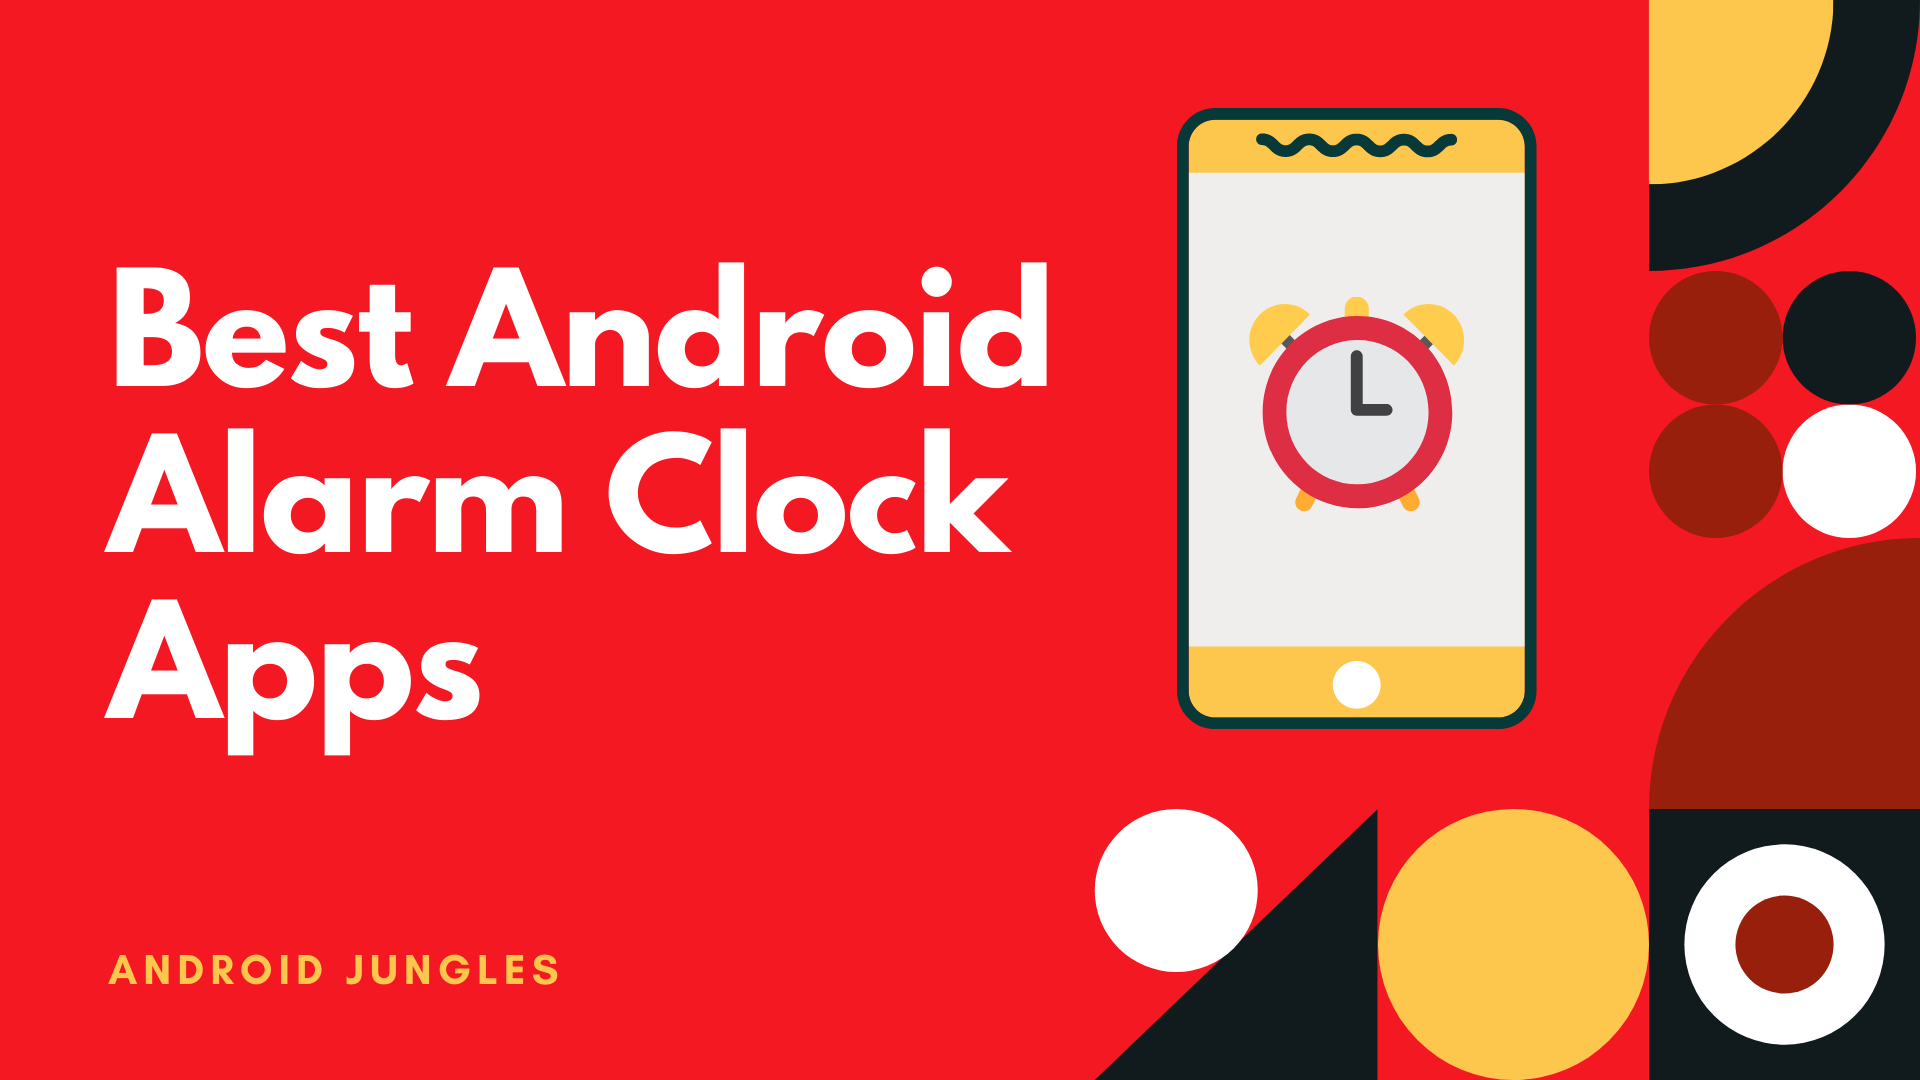 Top 5 Best Android Alarm Clock Apps